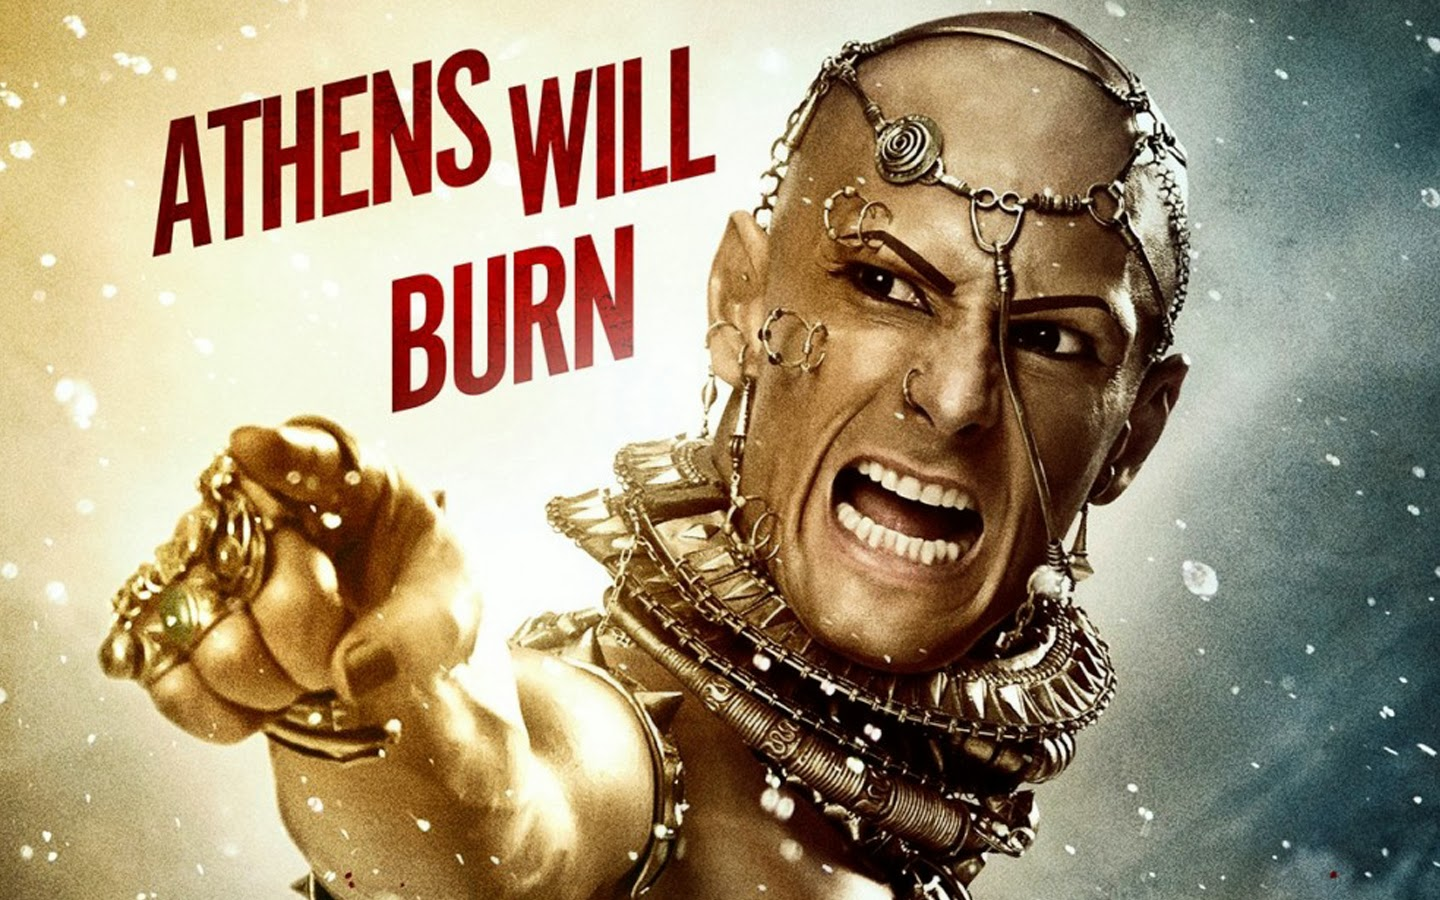 xerxes 300 rise of an empire 6a wallpaper hd